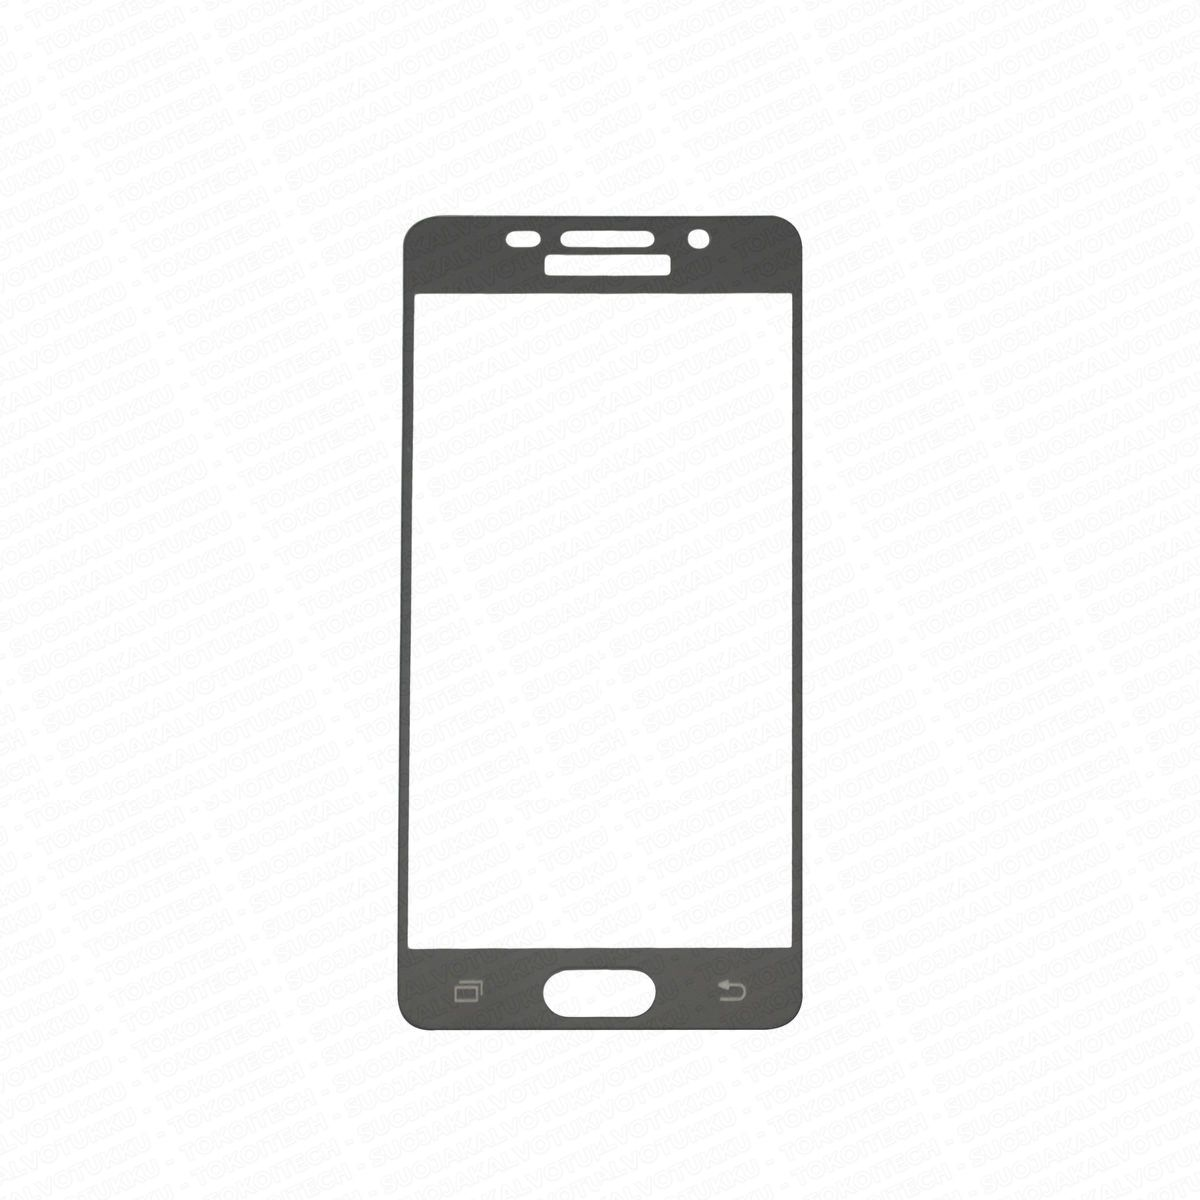 Samsung Galaxy A3 (2016) panssarilasi, 2.5D Full Cover